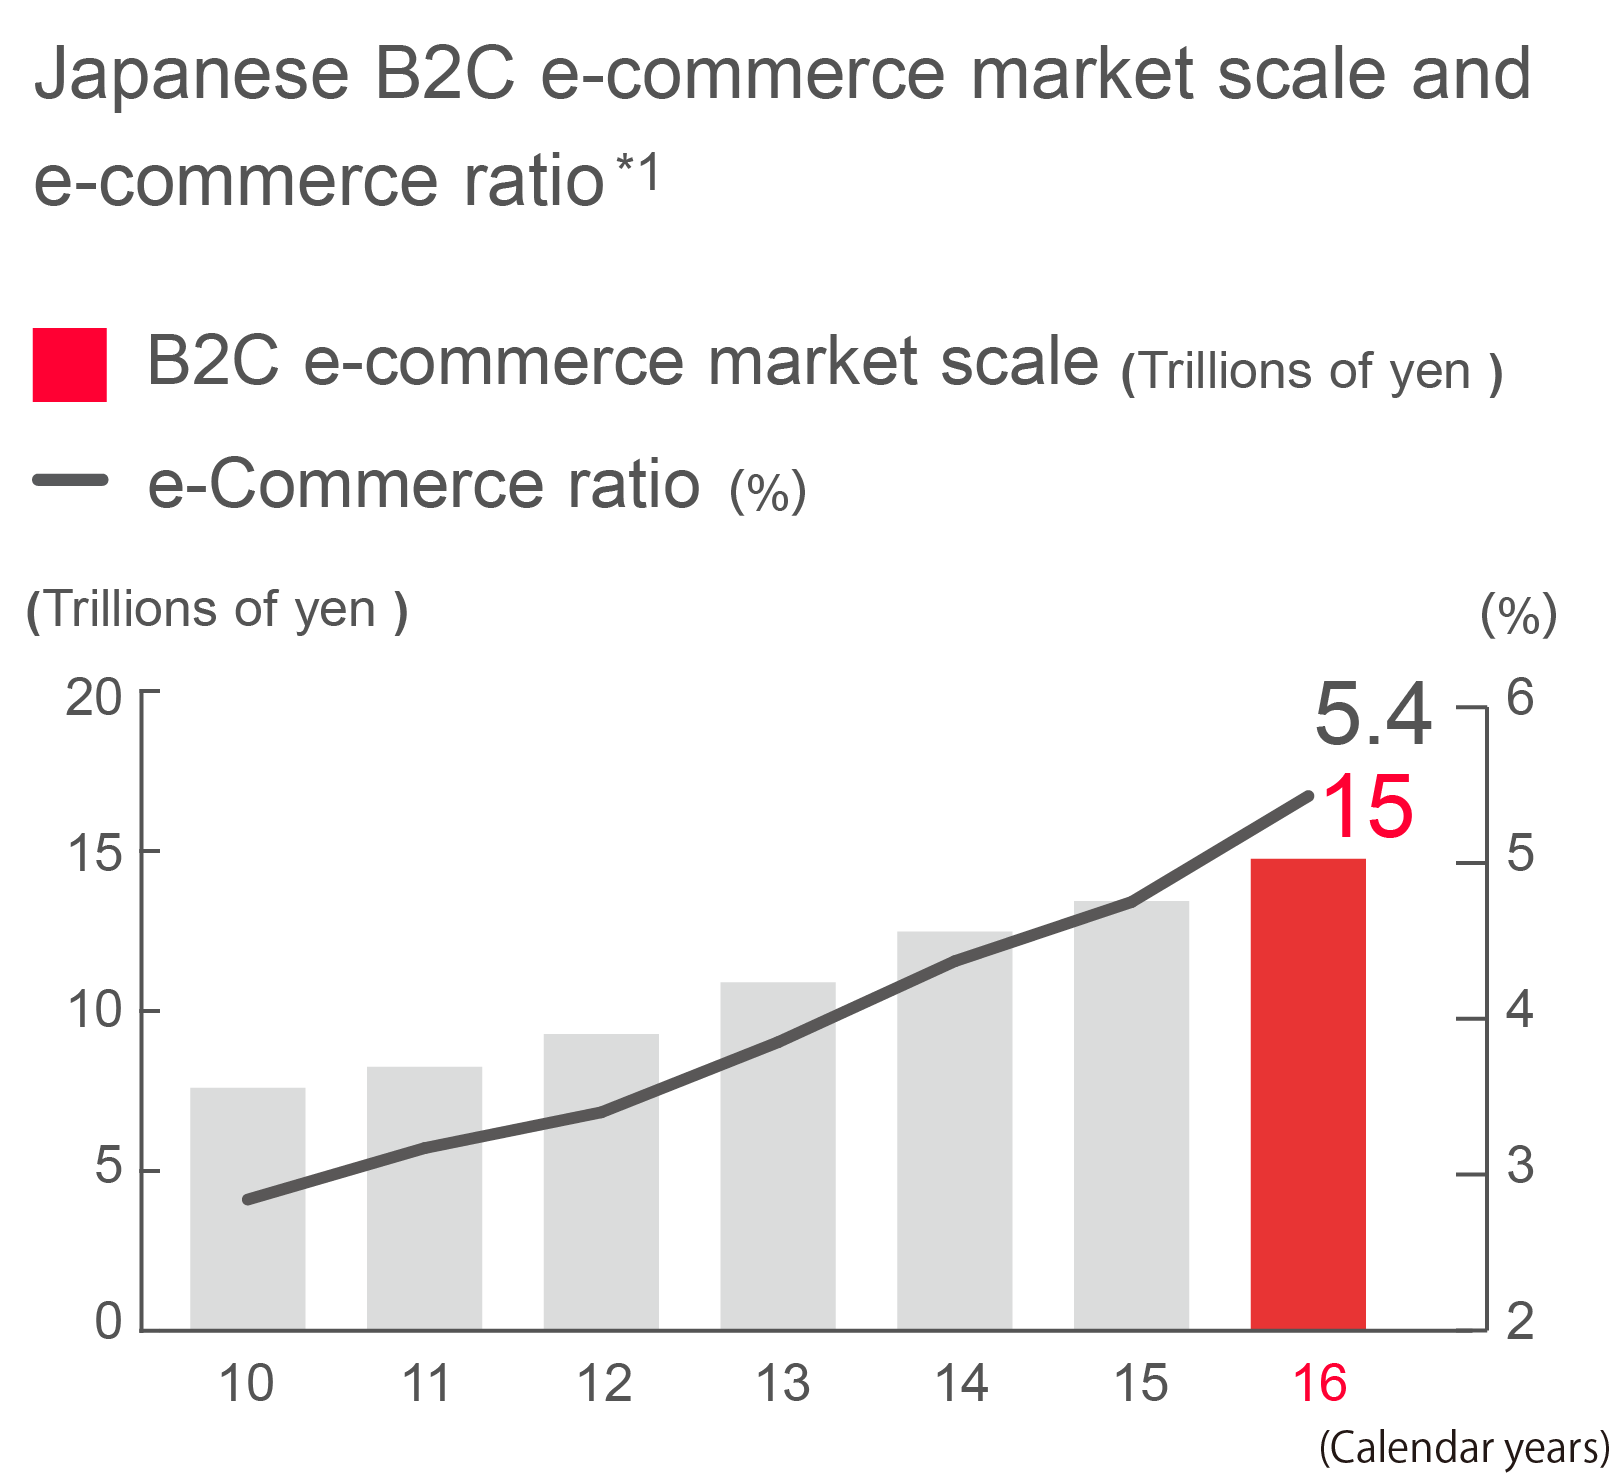 Graph chart of Japanese B2C e-commerce market scale and e-commerce ratio